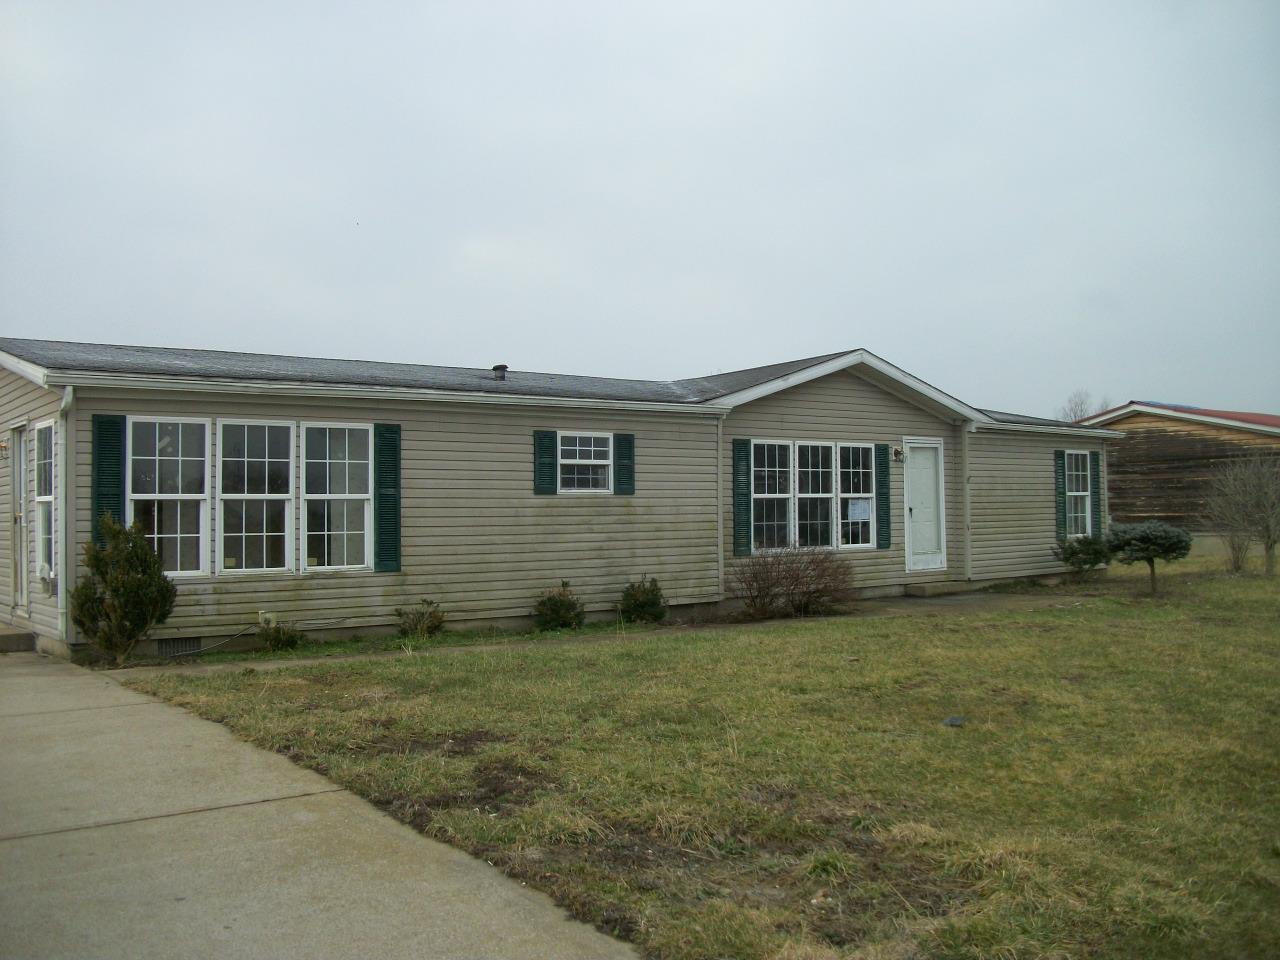 290 Eagle Ridge Dr, Dry Ridge, KY 41035